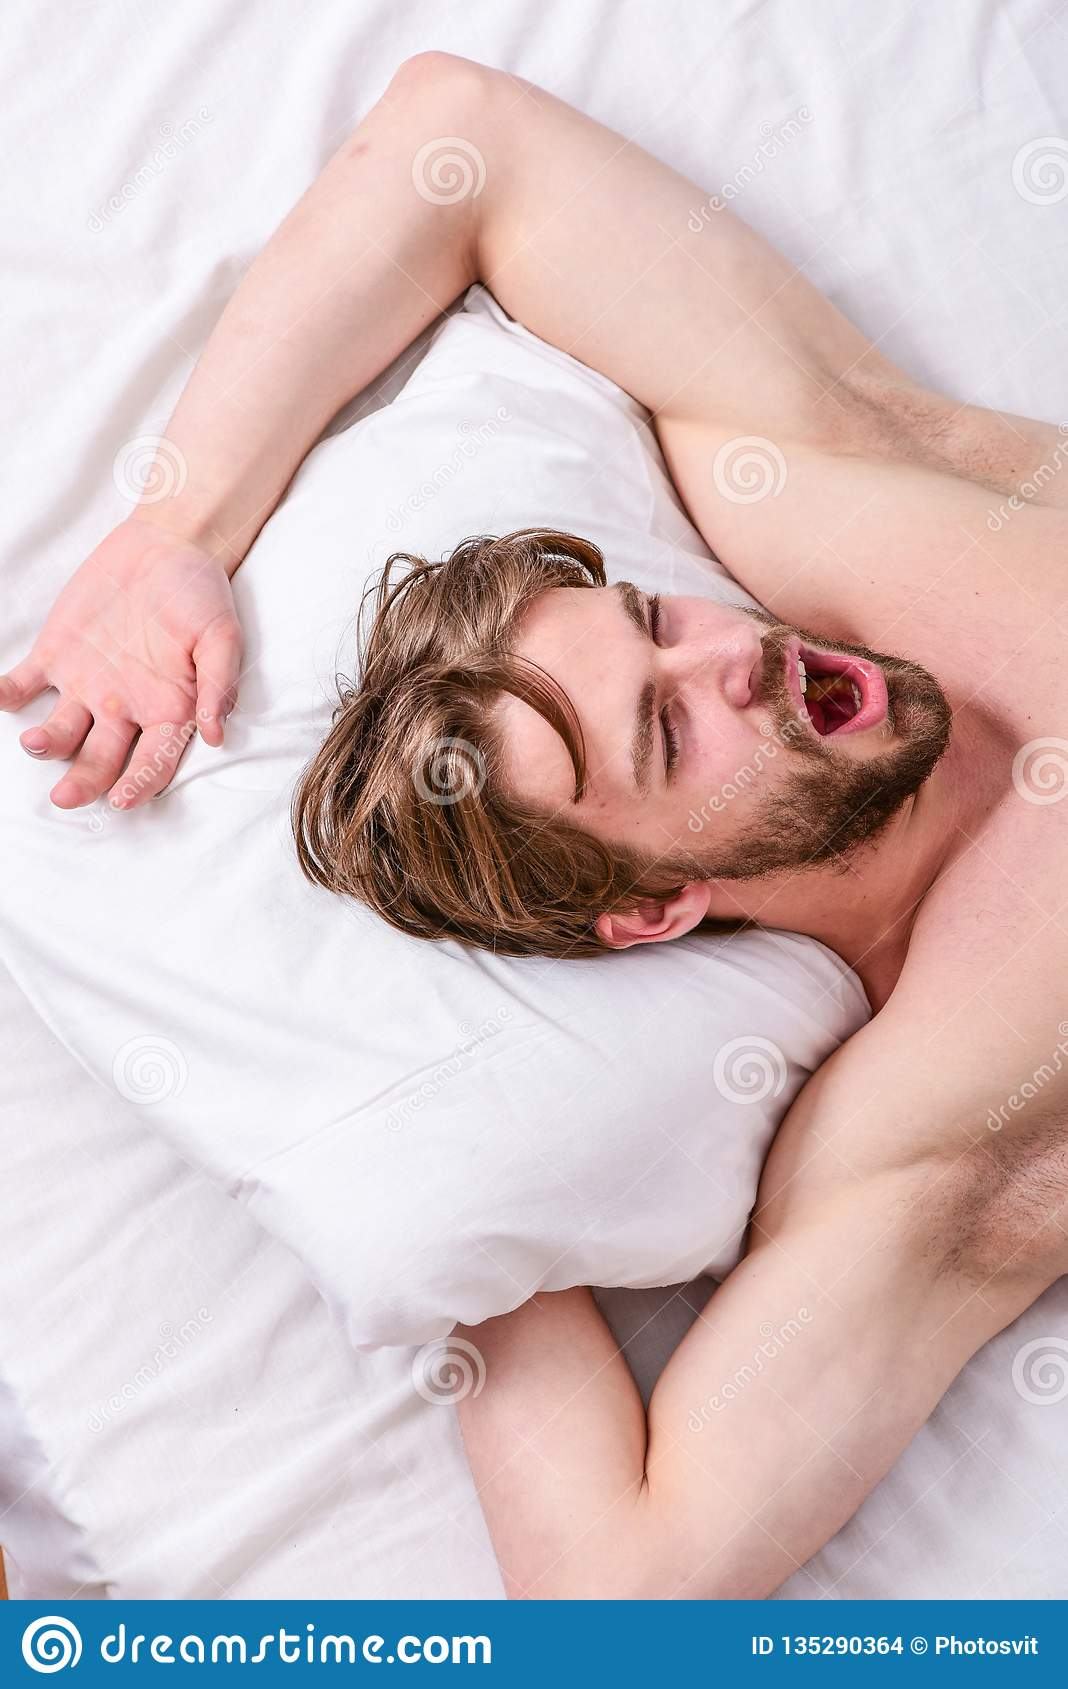 Man handsome guy lay in bed. Get adequate and consistent amount of sleep every night. Expert tips on sleeping better